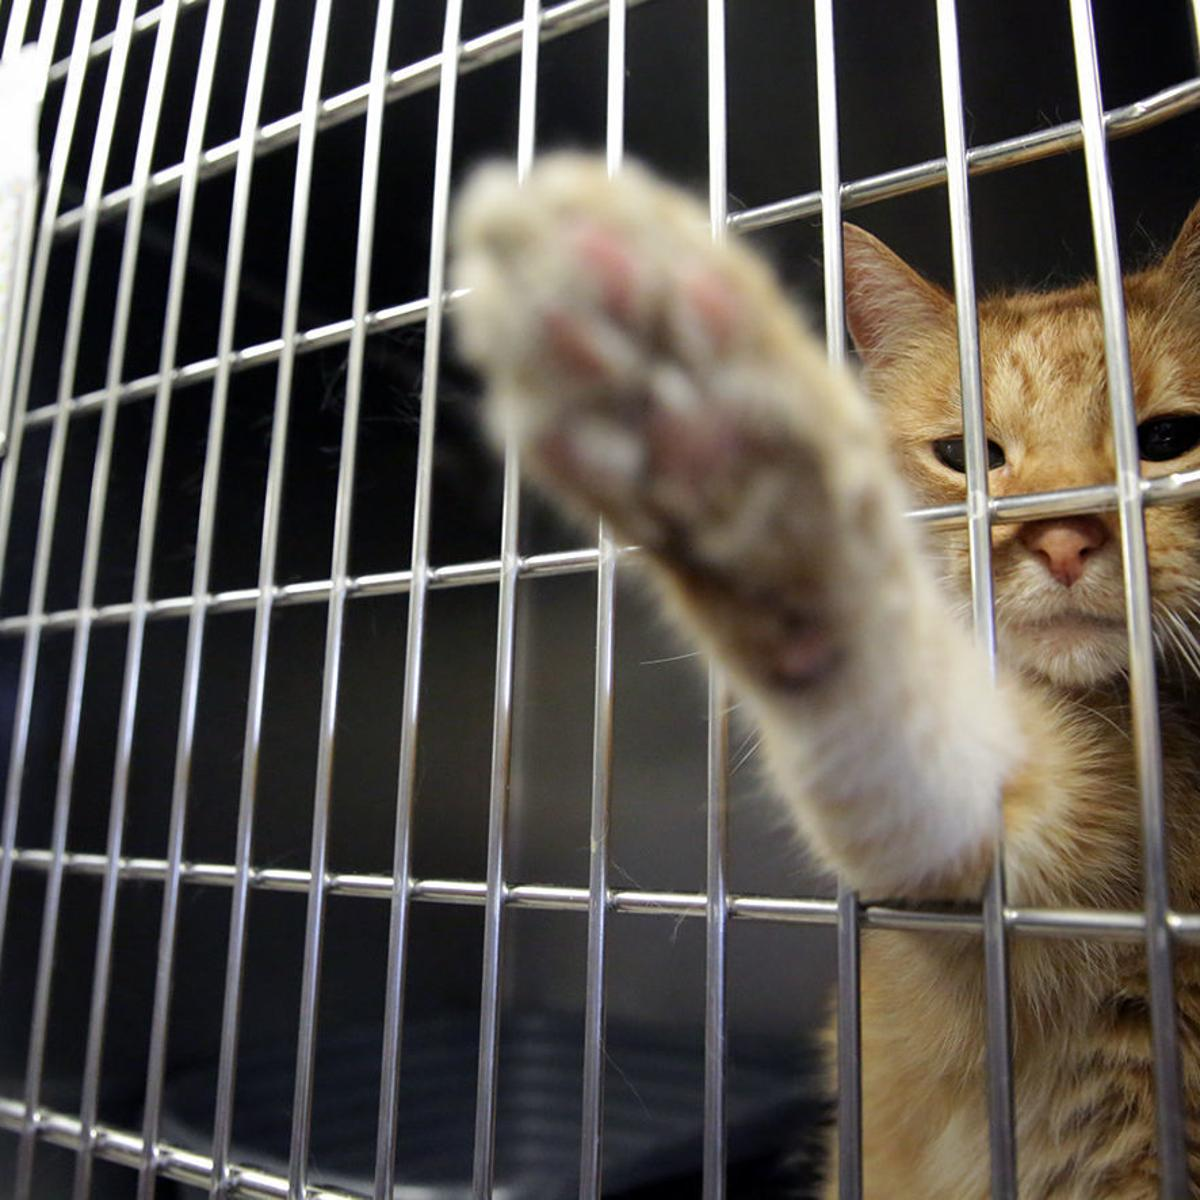 Atlantic County animal shelter to hold rabies vaccination